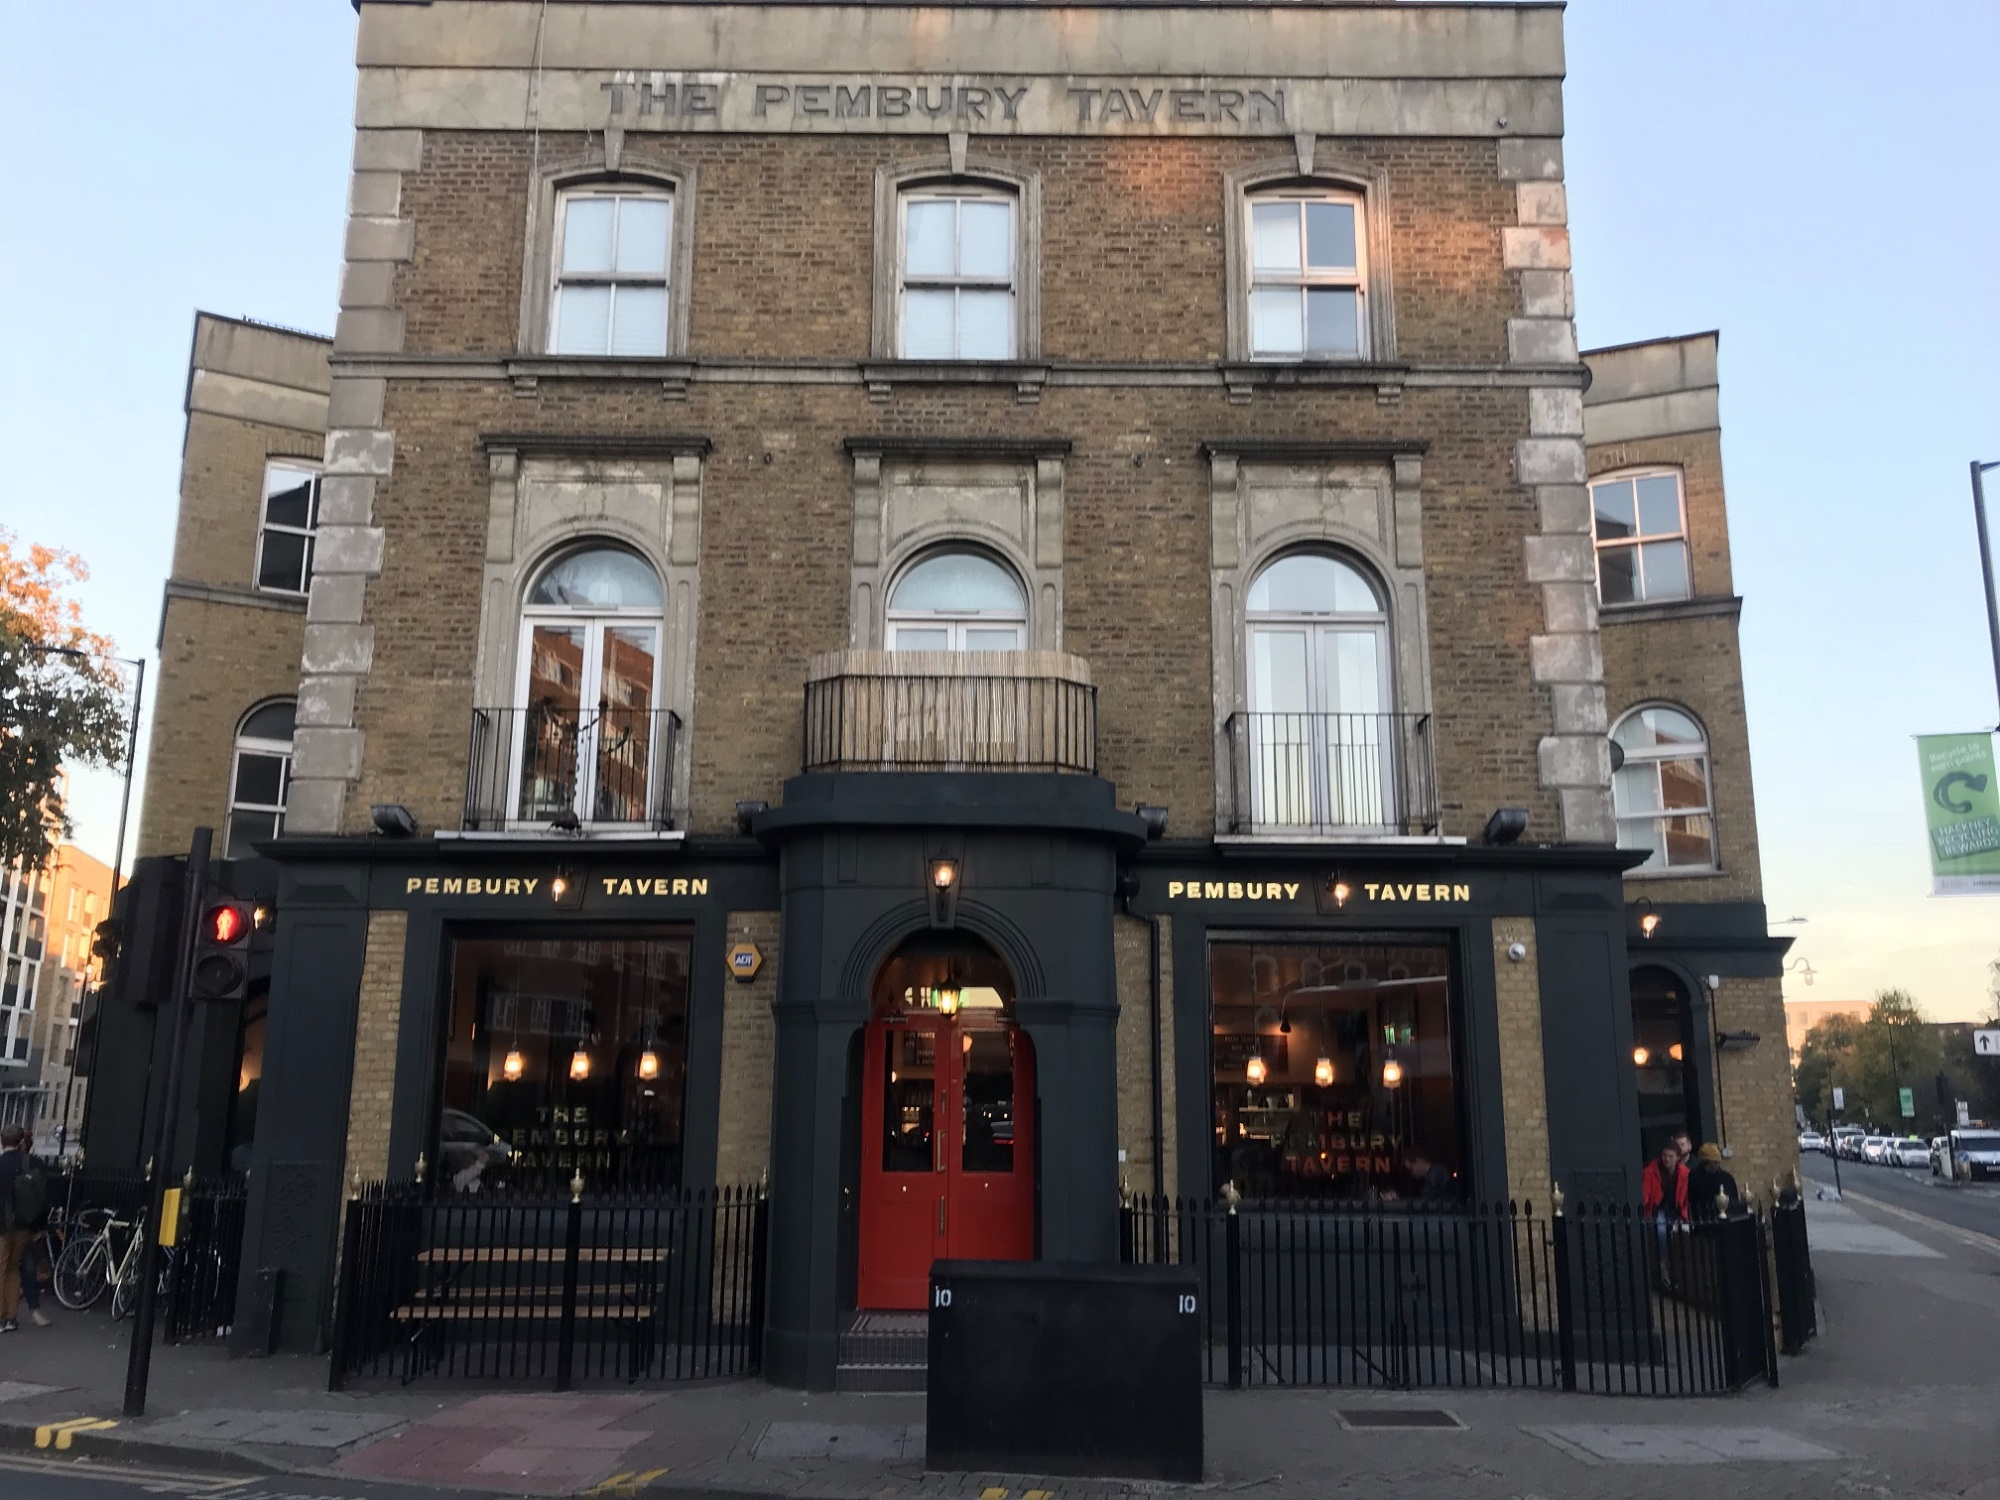 The Pembury Tavern in Hackney